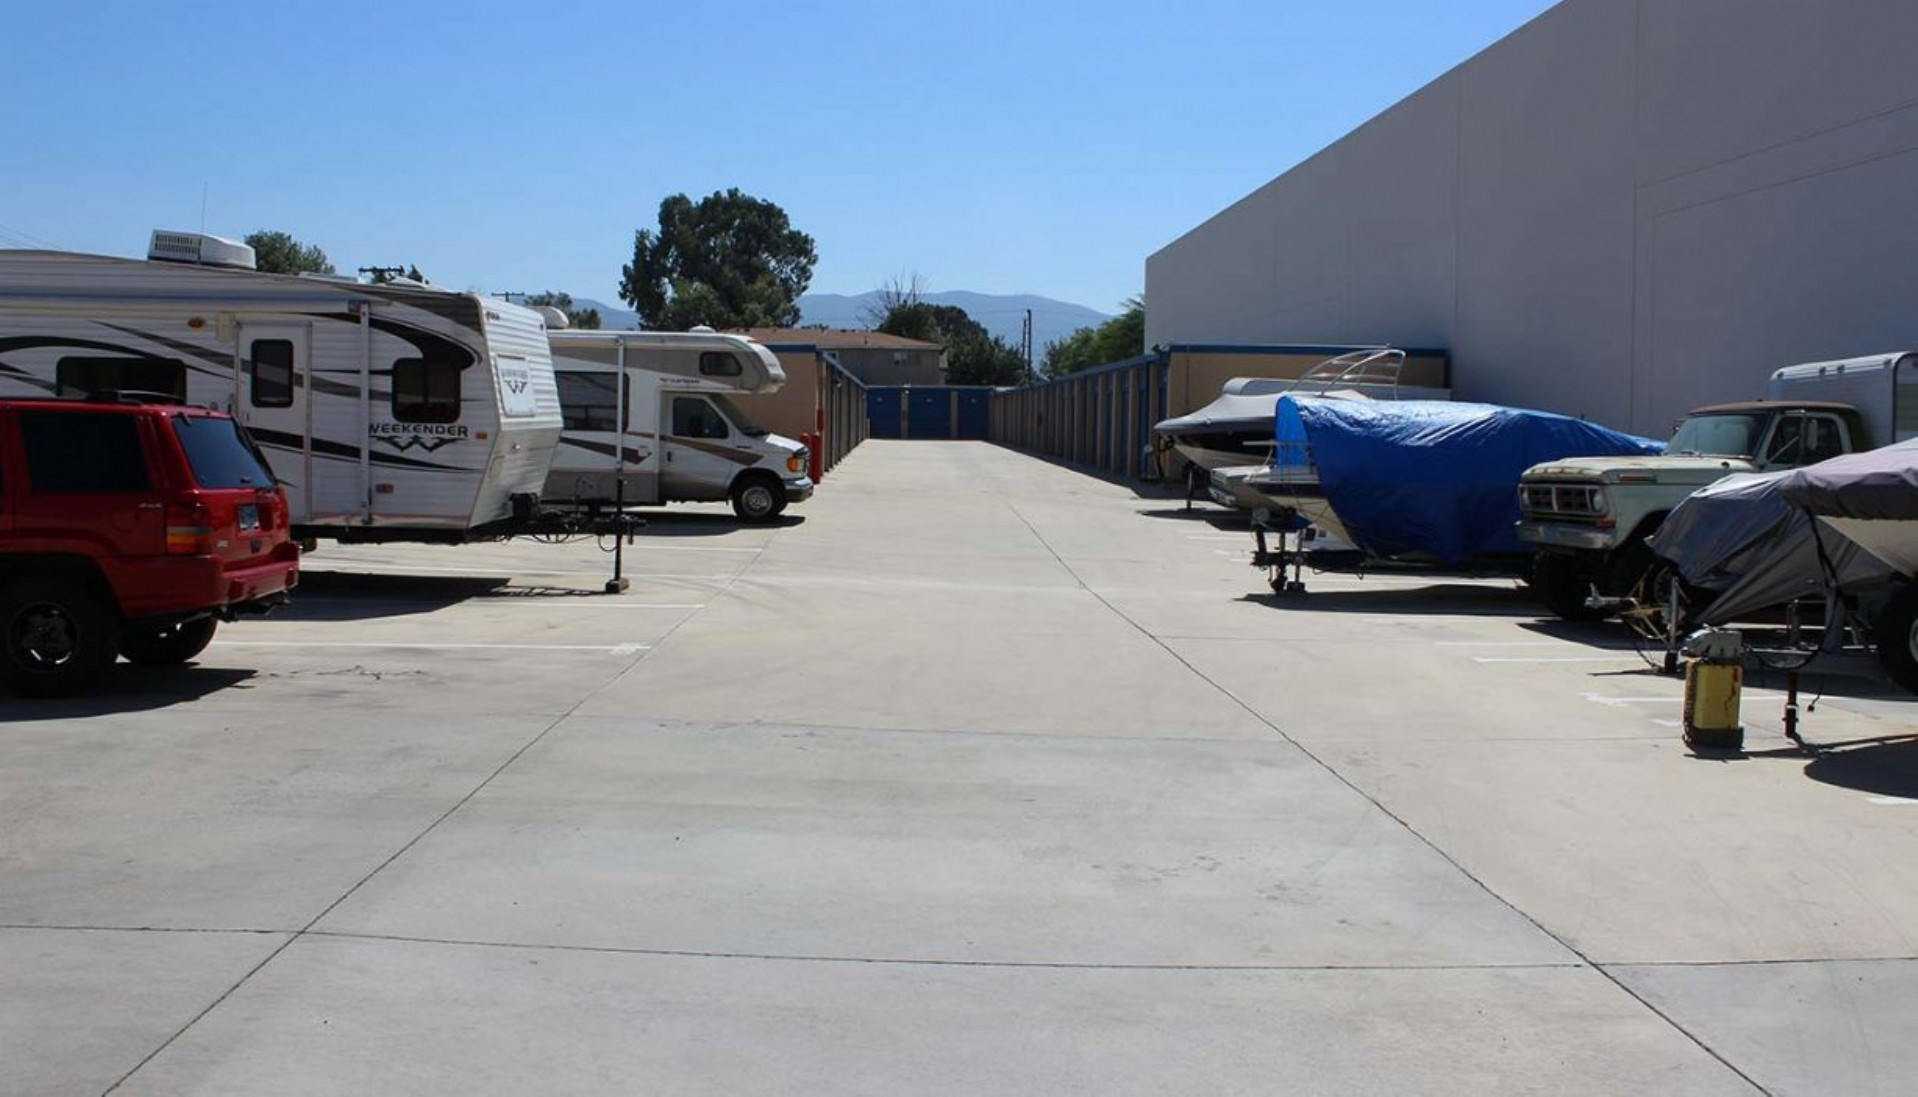 Travel trailer, SUV, small RV, boats and a truck parked in vehicle storage spaces